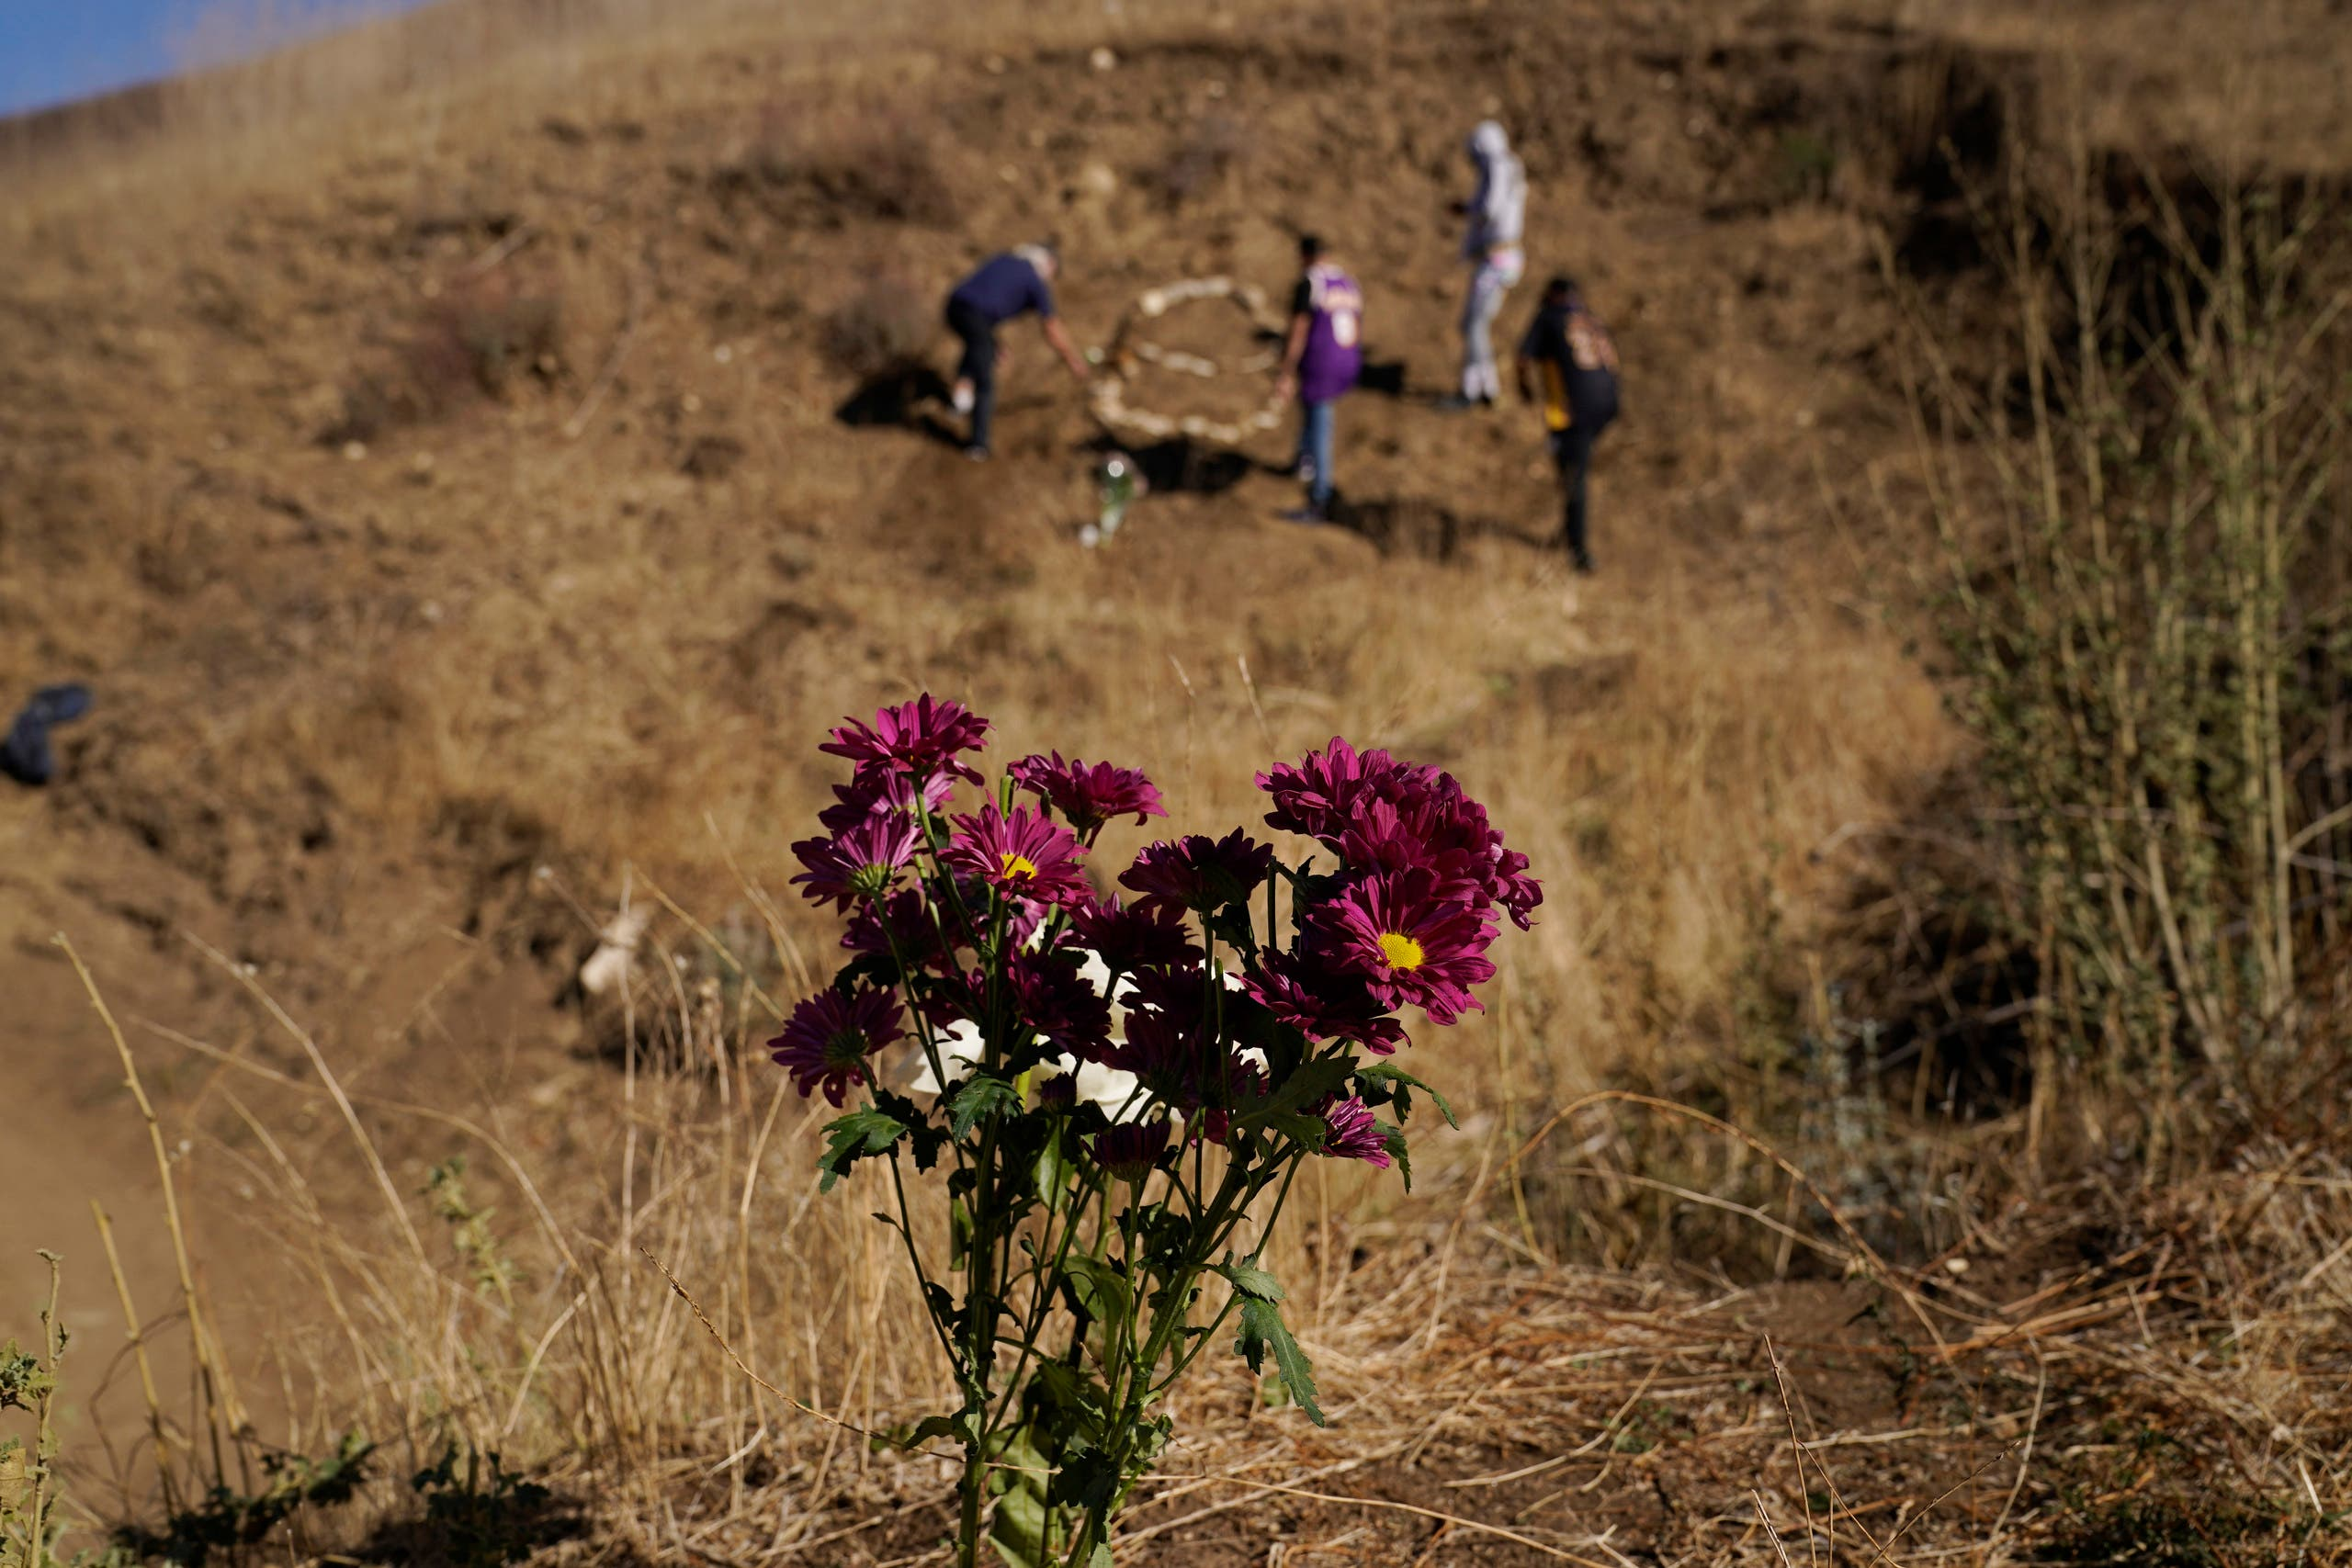 Flowers are placed in honor of Kobe Bryant, Tuesday, Jan. 26, 2021, in Calabasas, Calif., at the site of a helicopter crash that killed Bryant, his daughter Gianna, and seven others one year ago. (AP)